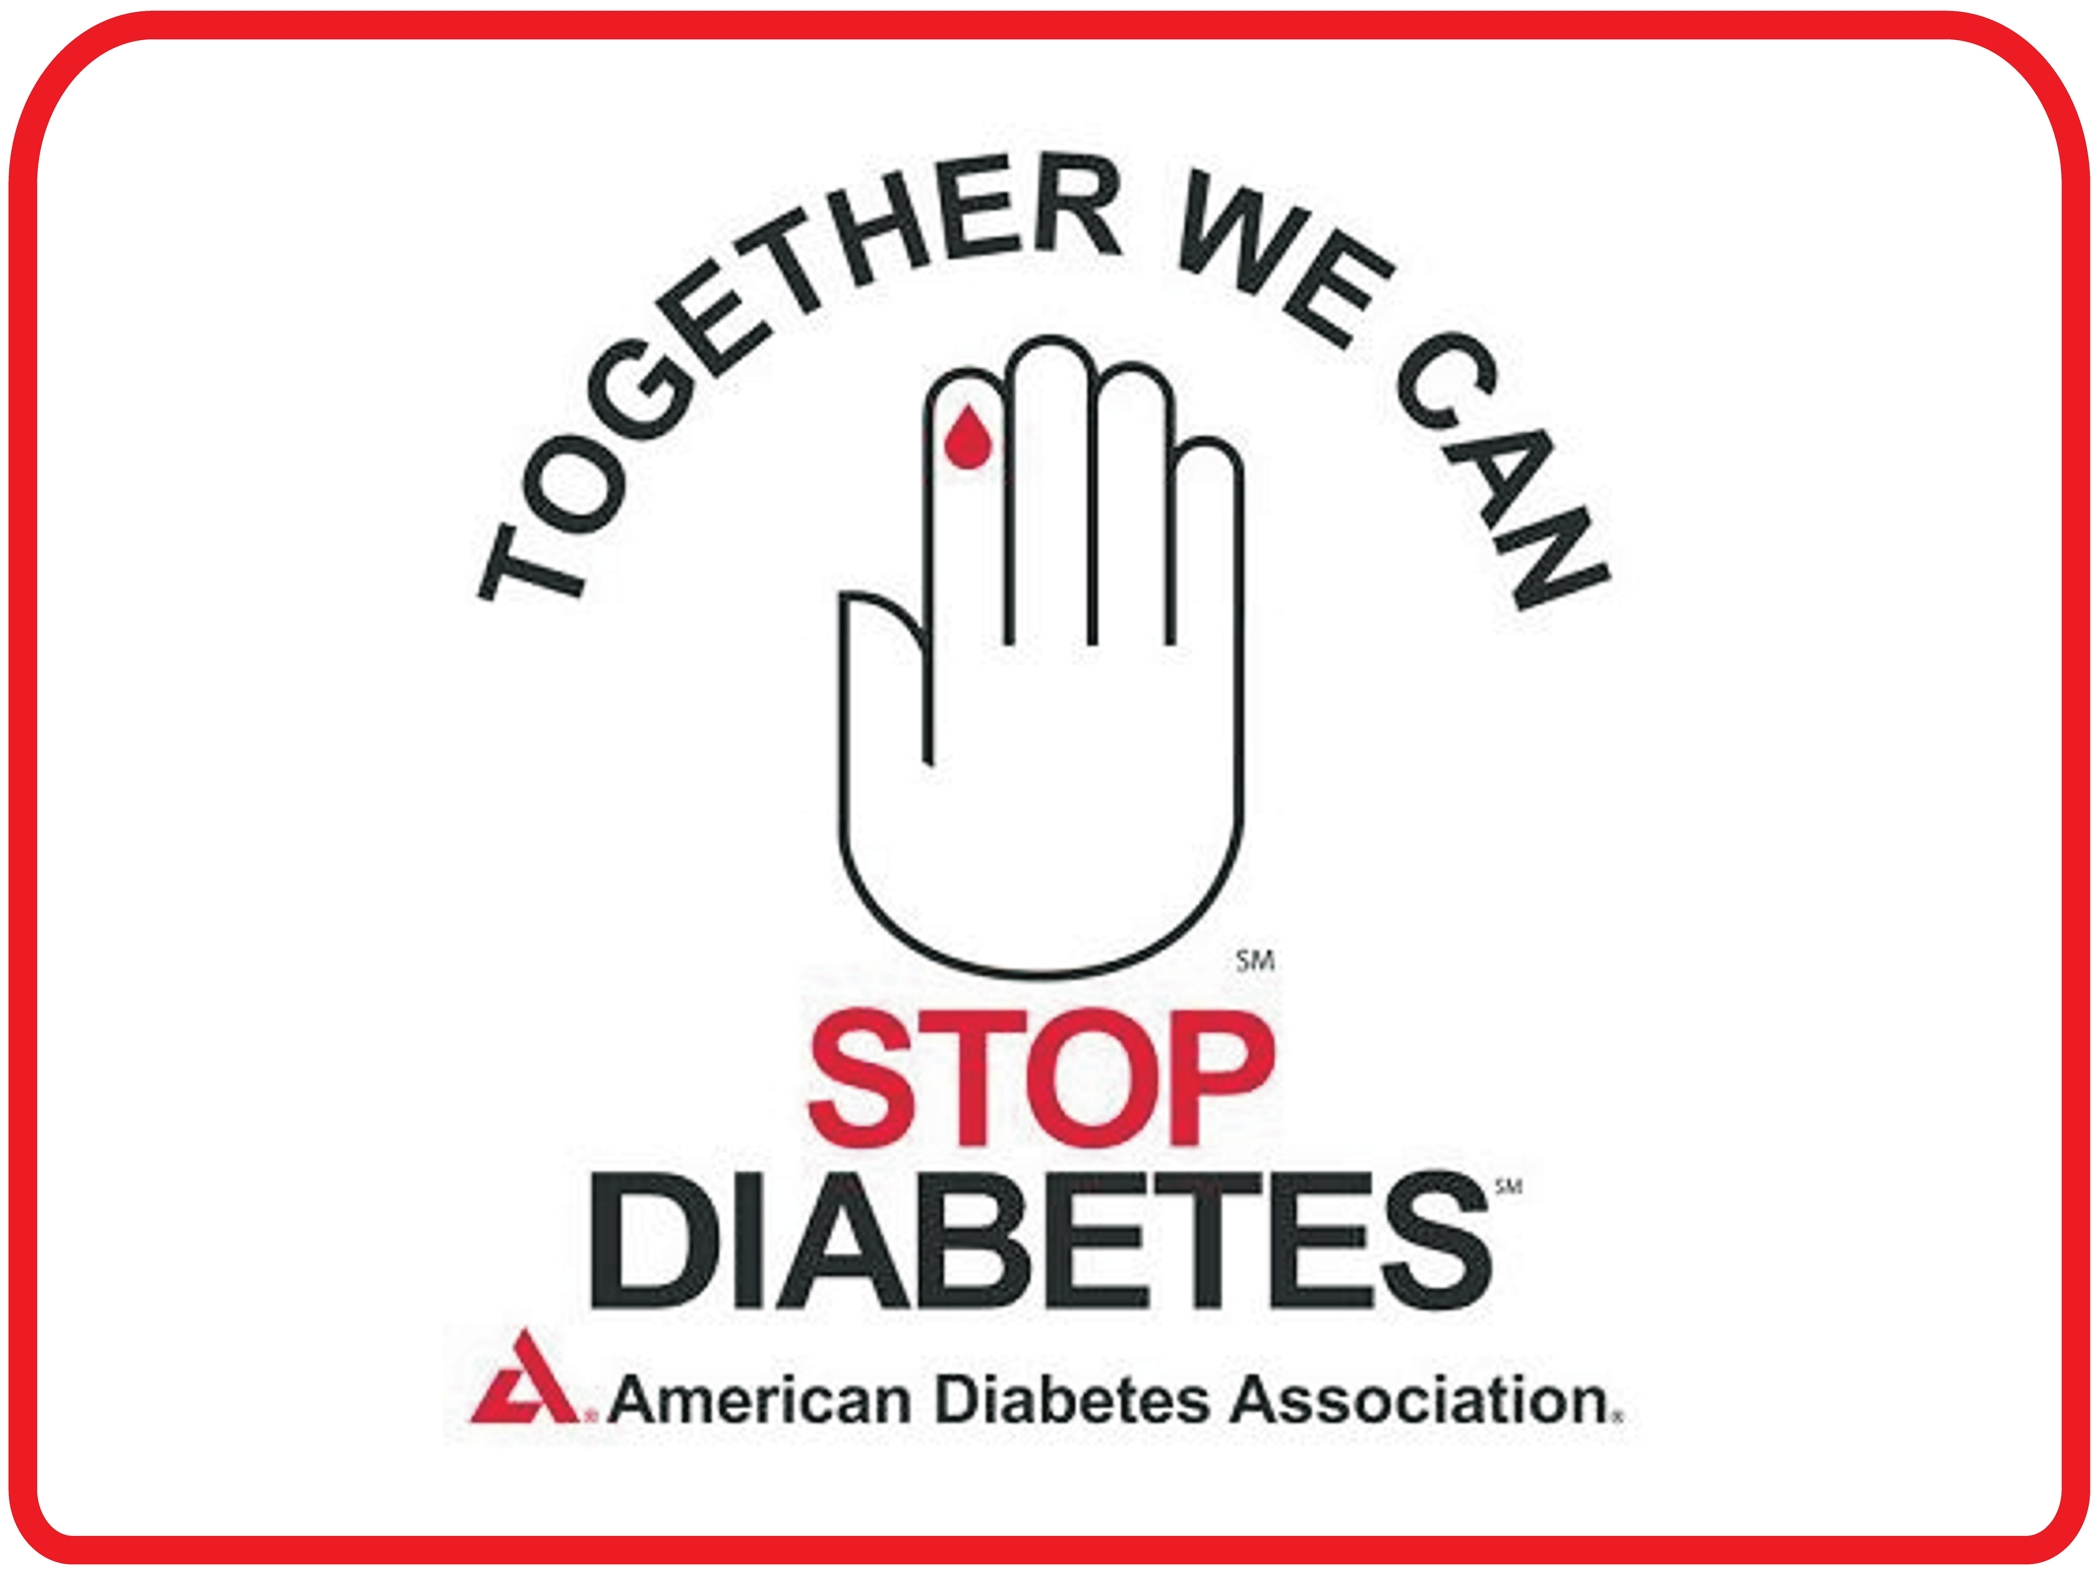 Crossroads 20diabetes 20expo 202015